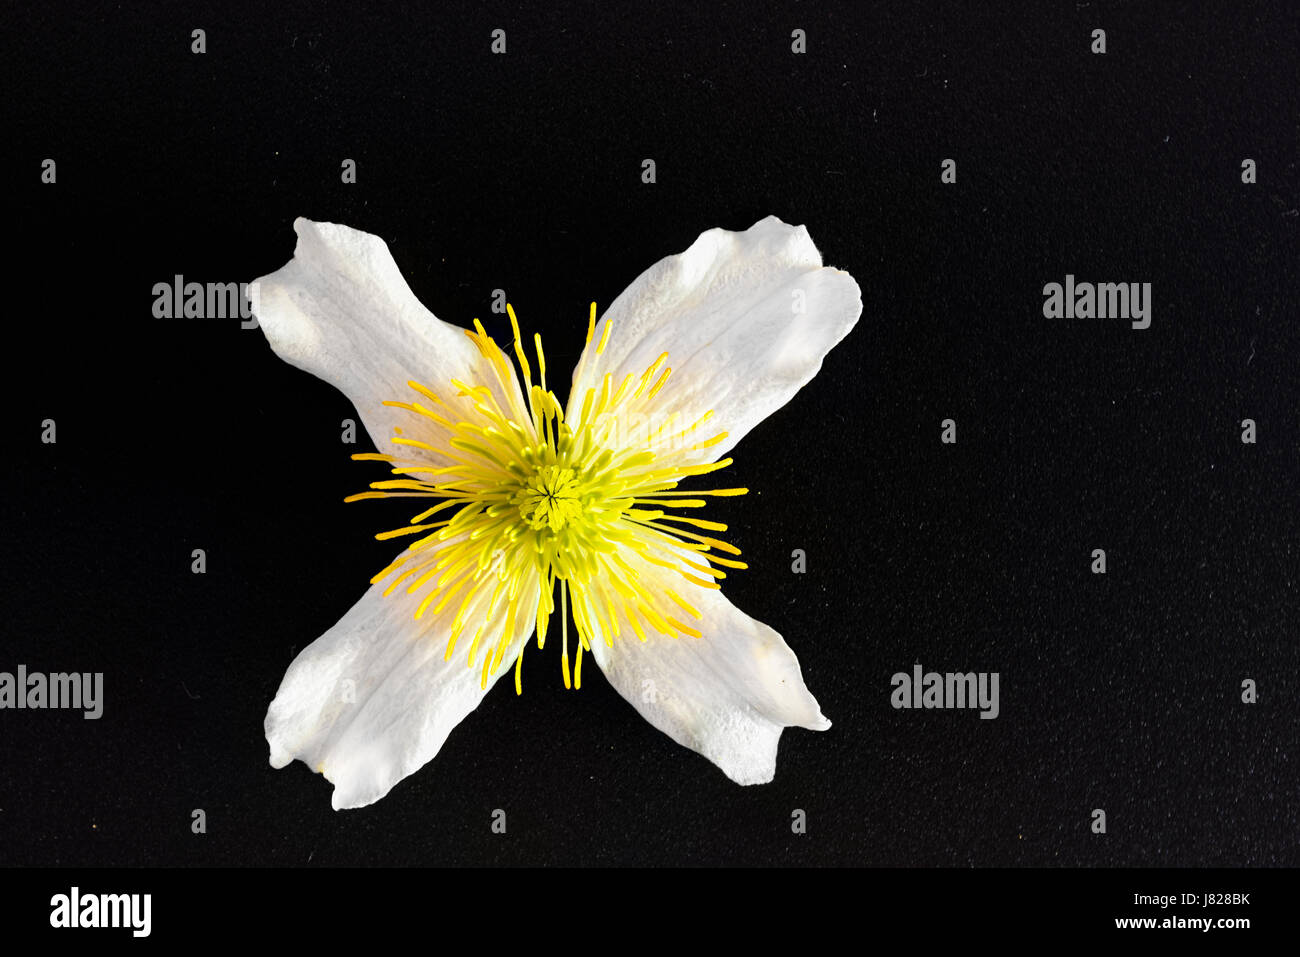 cross or cruciform shape on the white and yellow bloom of a climbing plant Stock Photo